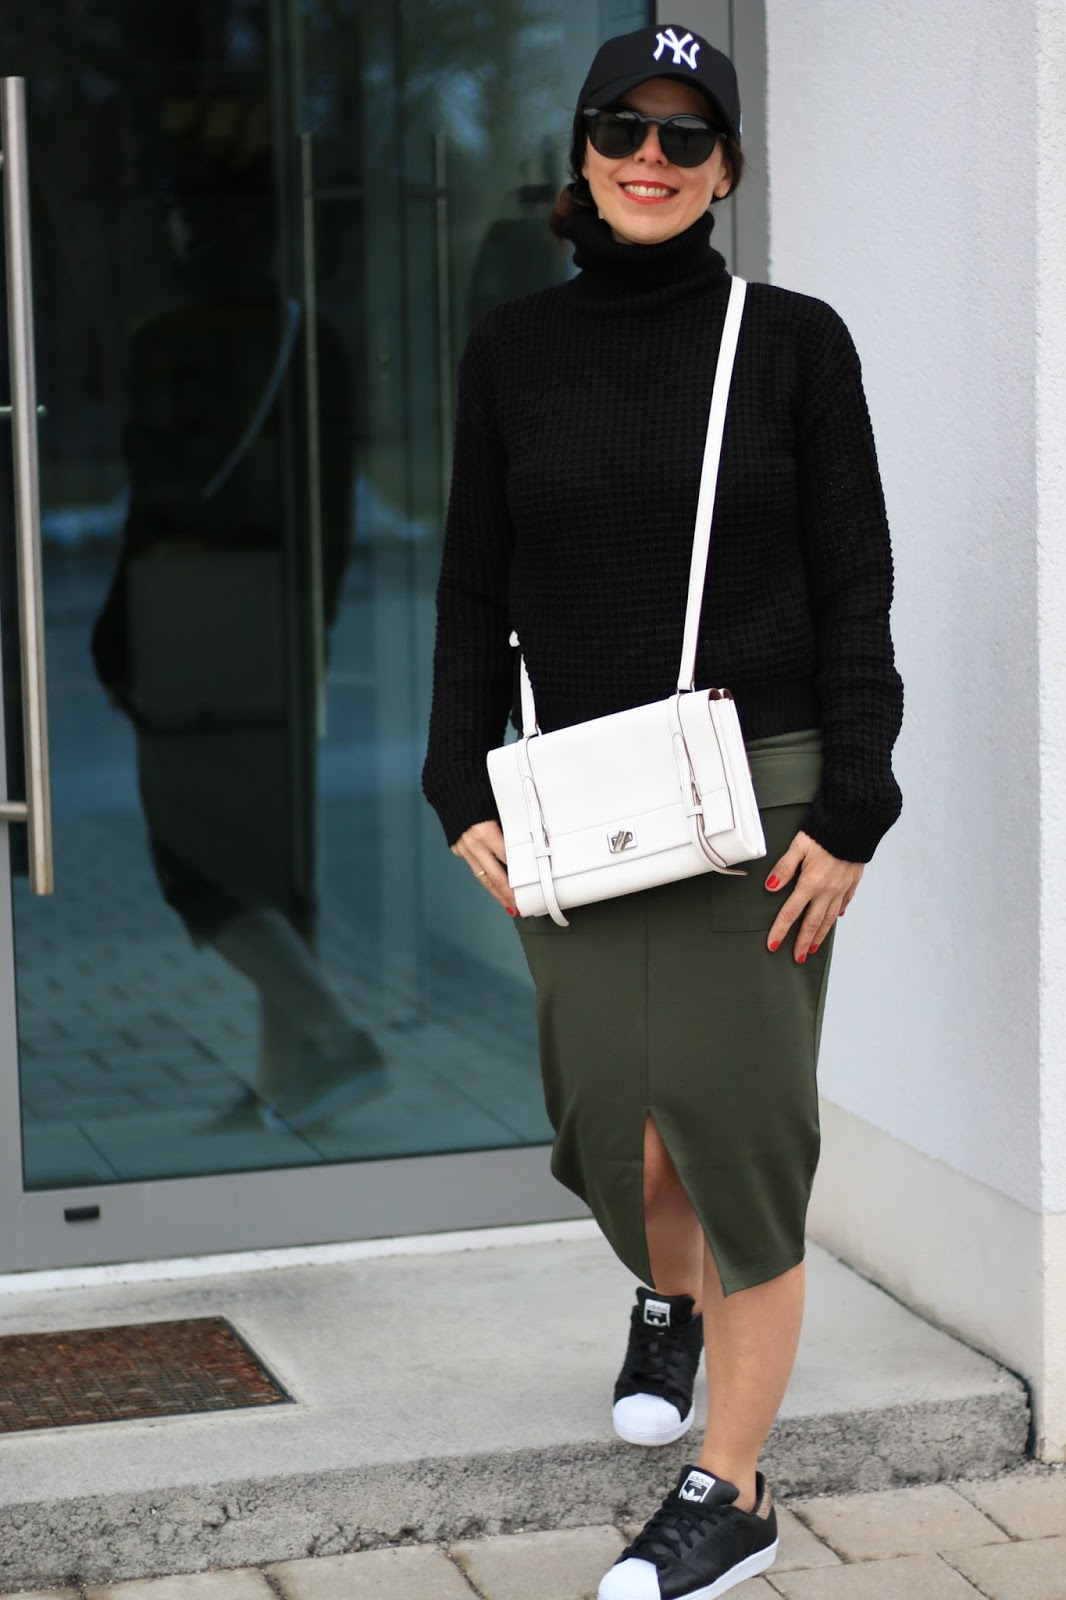 Freetime look, black turtle neck, white Prada bag, khaki midi skirt, black Adidas sneakers with pyhton